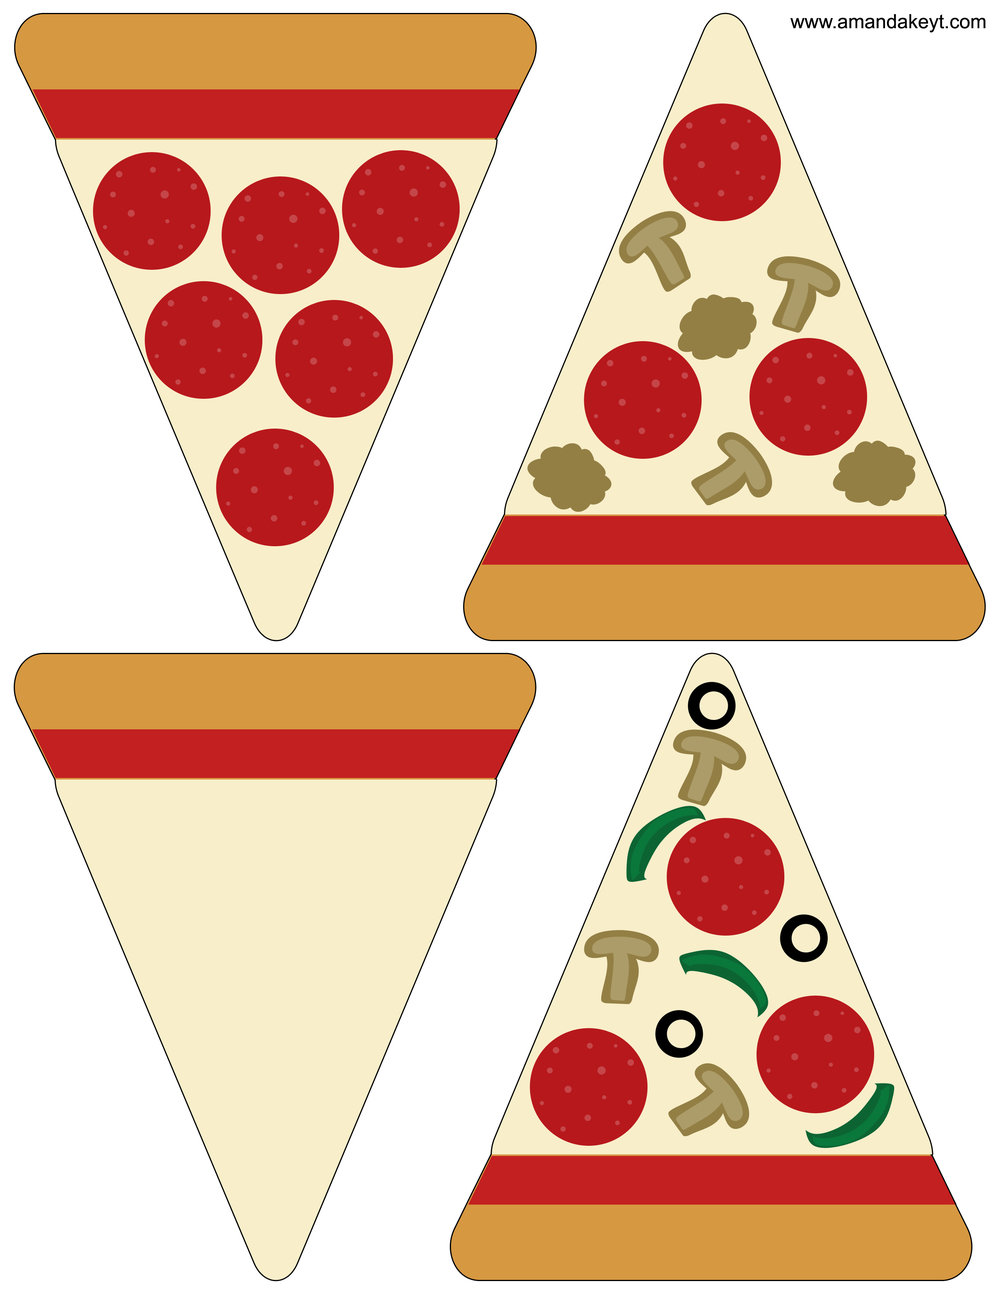 PizzaSlices.jpg